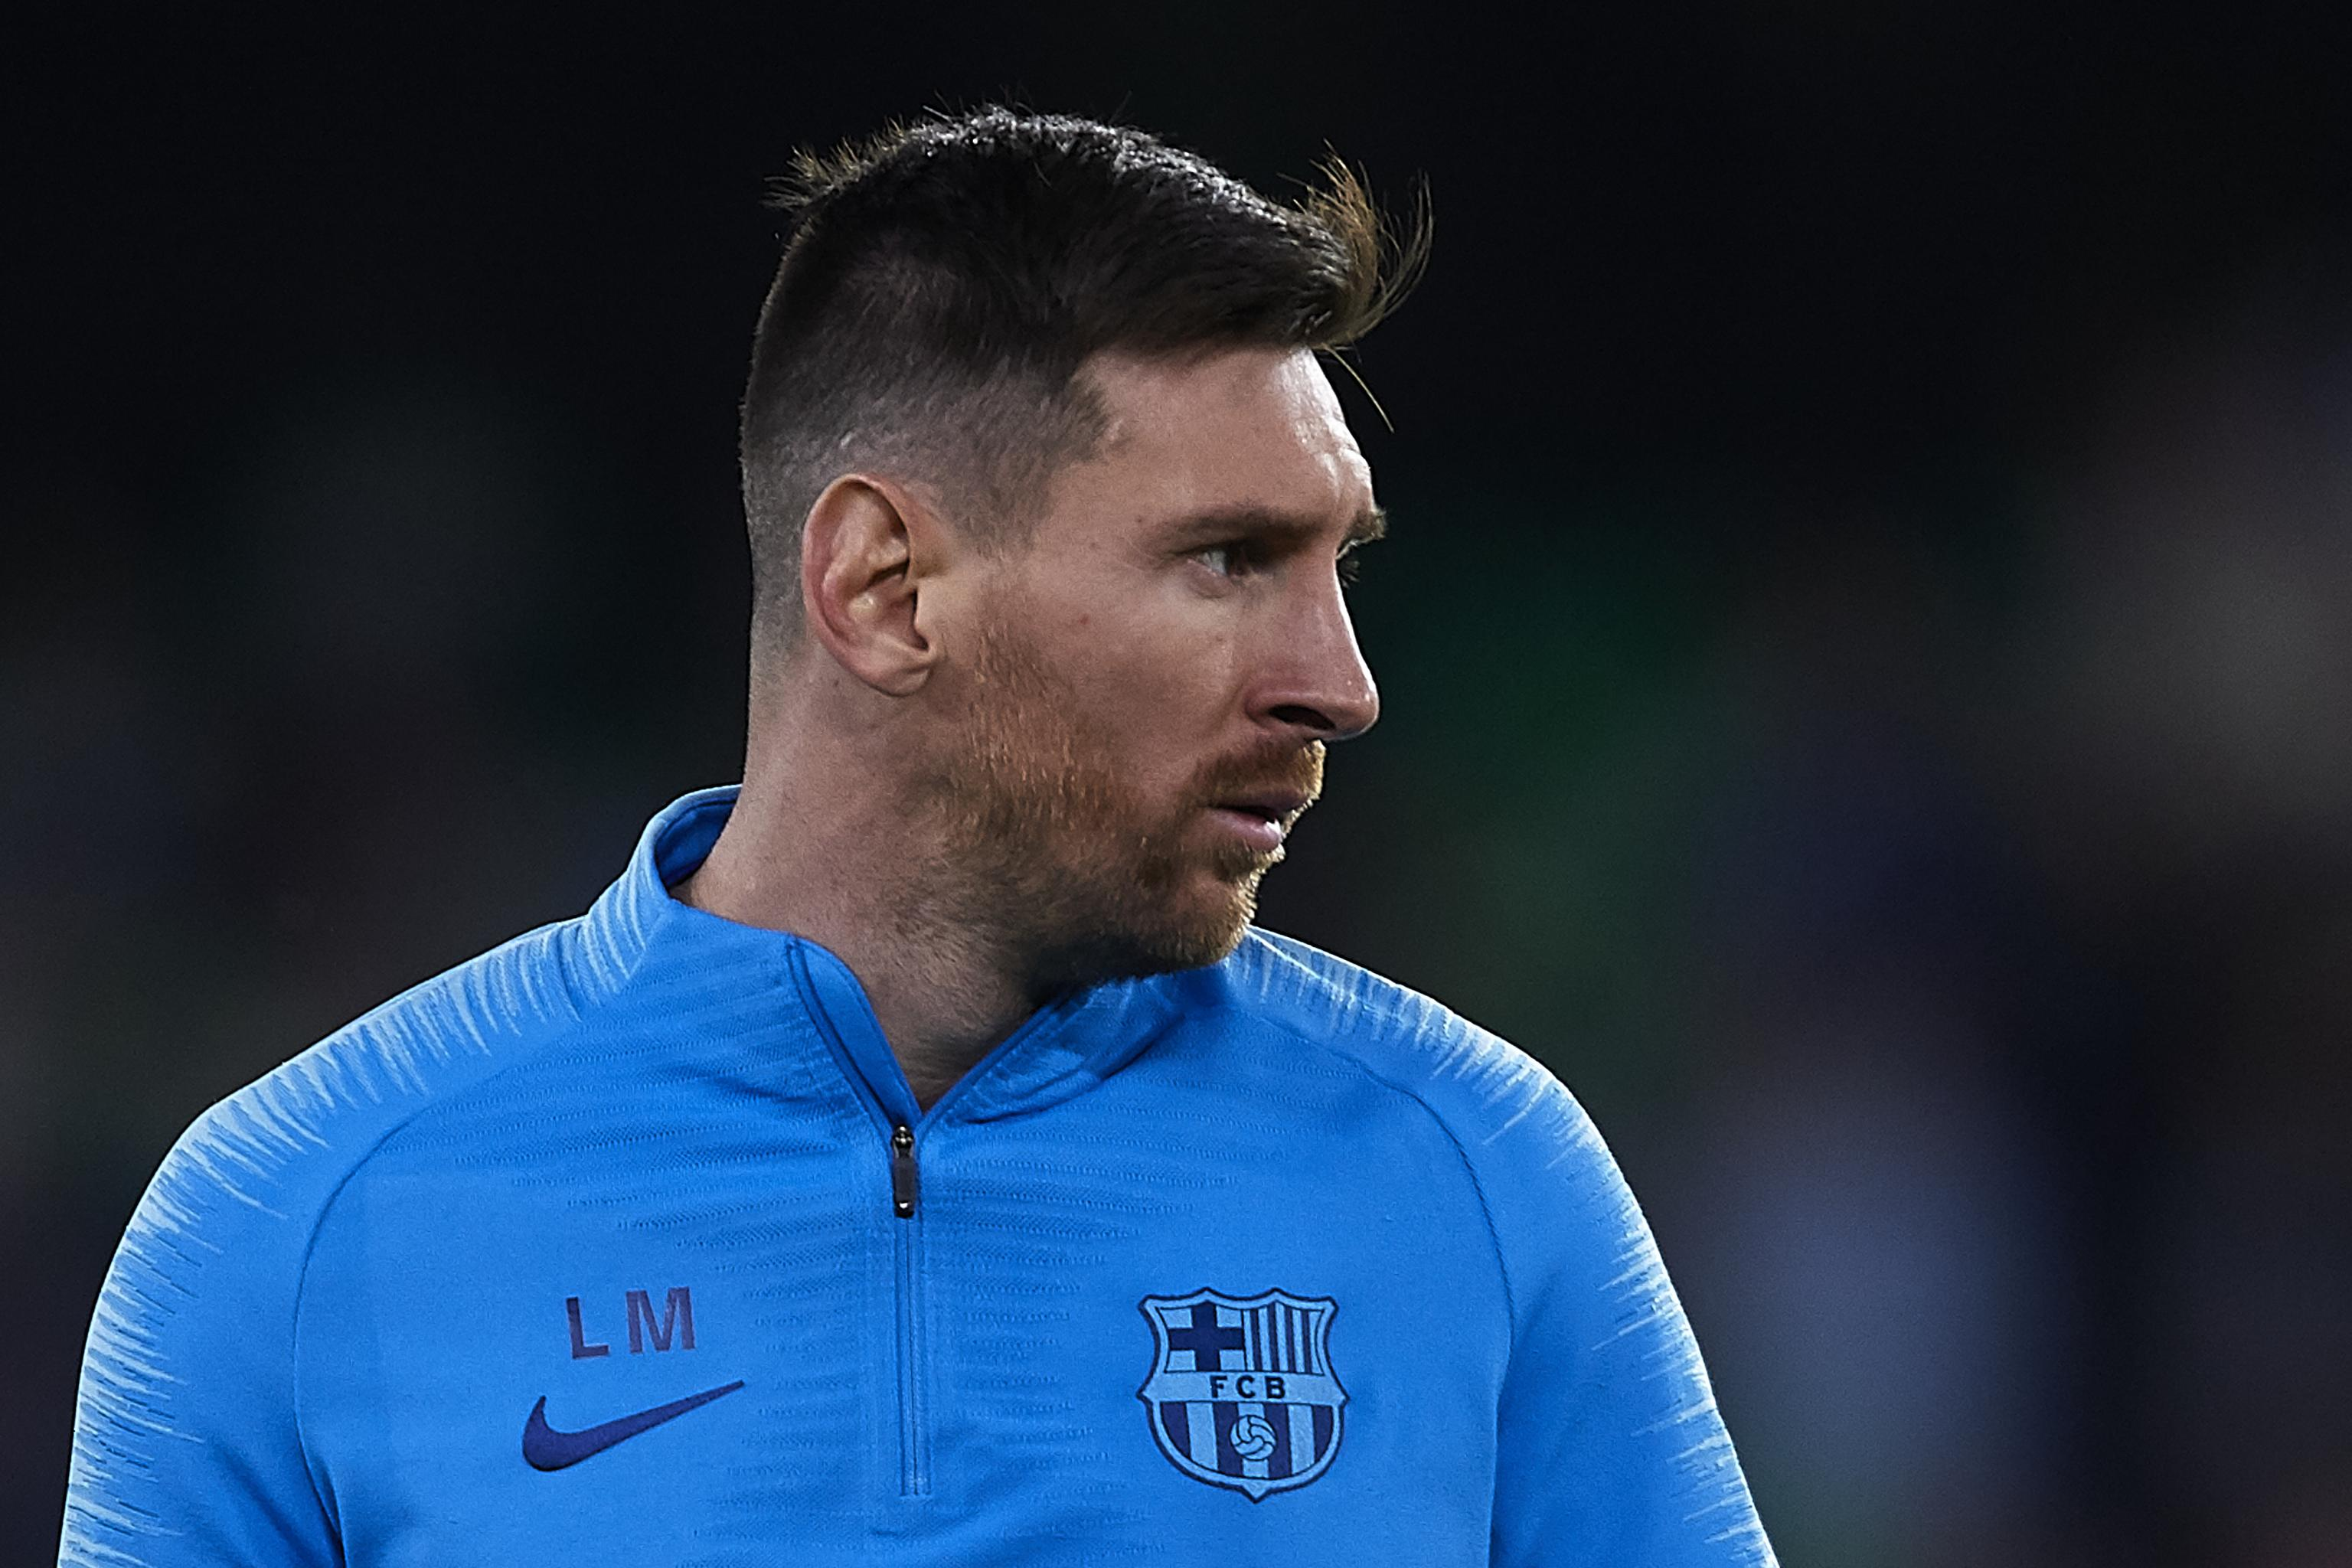 Lionel Messi Returns To Barcelona Training After Suffering Groin Injury Bleacher Report Latest News Videos And Highlights